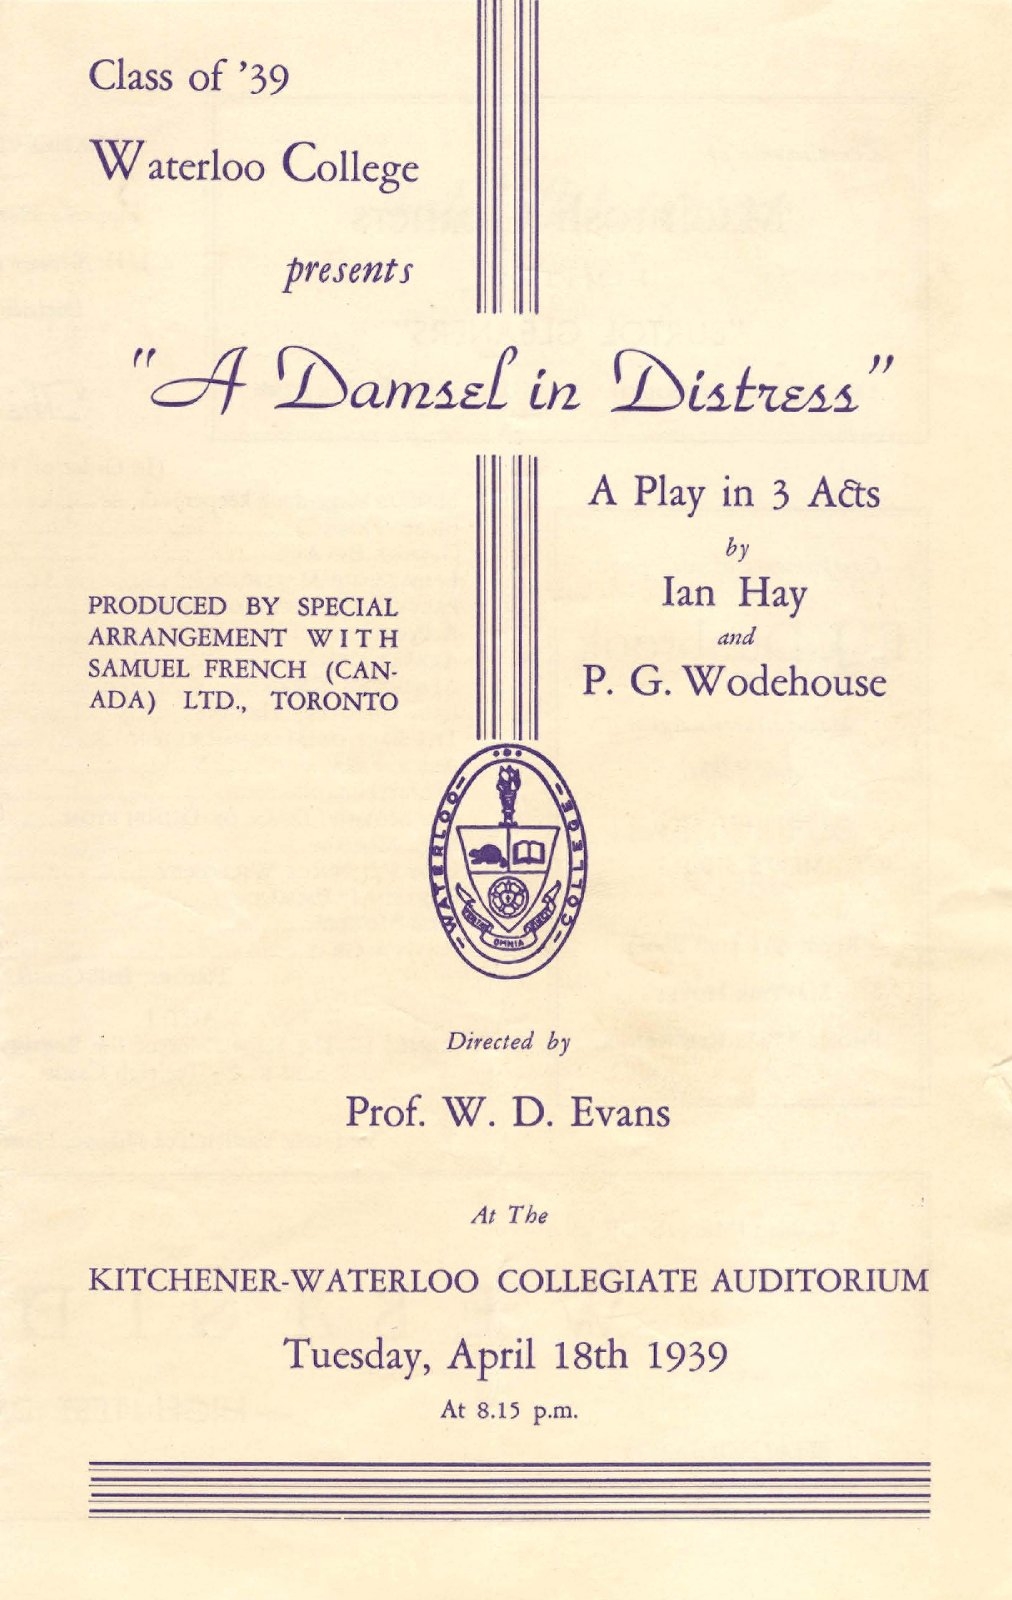 """Class of '39 Waterloo College presents """"A damsel in distress"""" a play in 3 acts by Ian Hay and P. G. Woodhouse"""